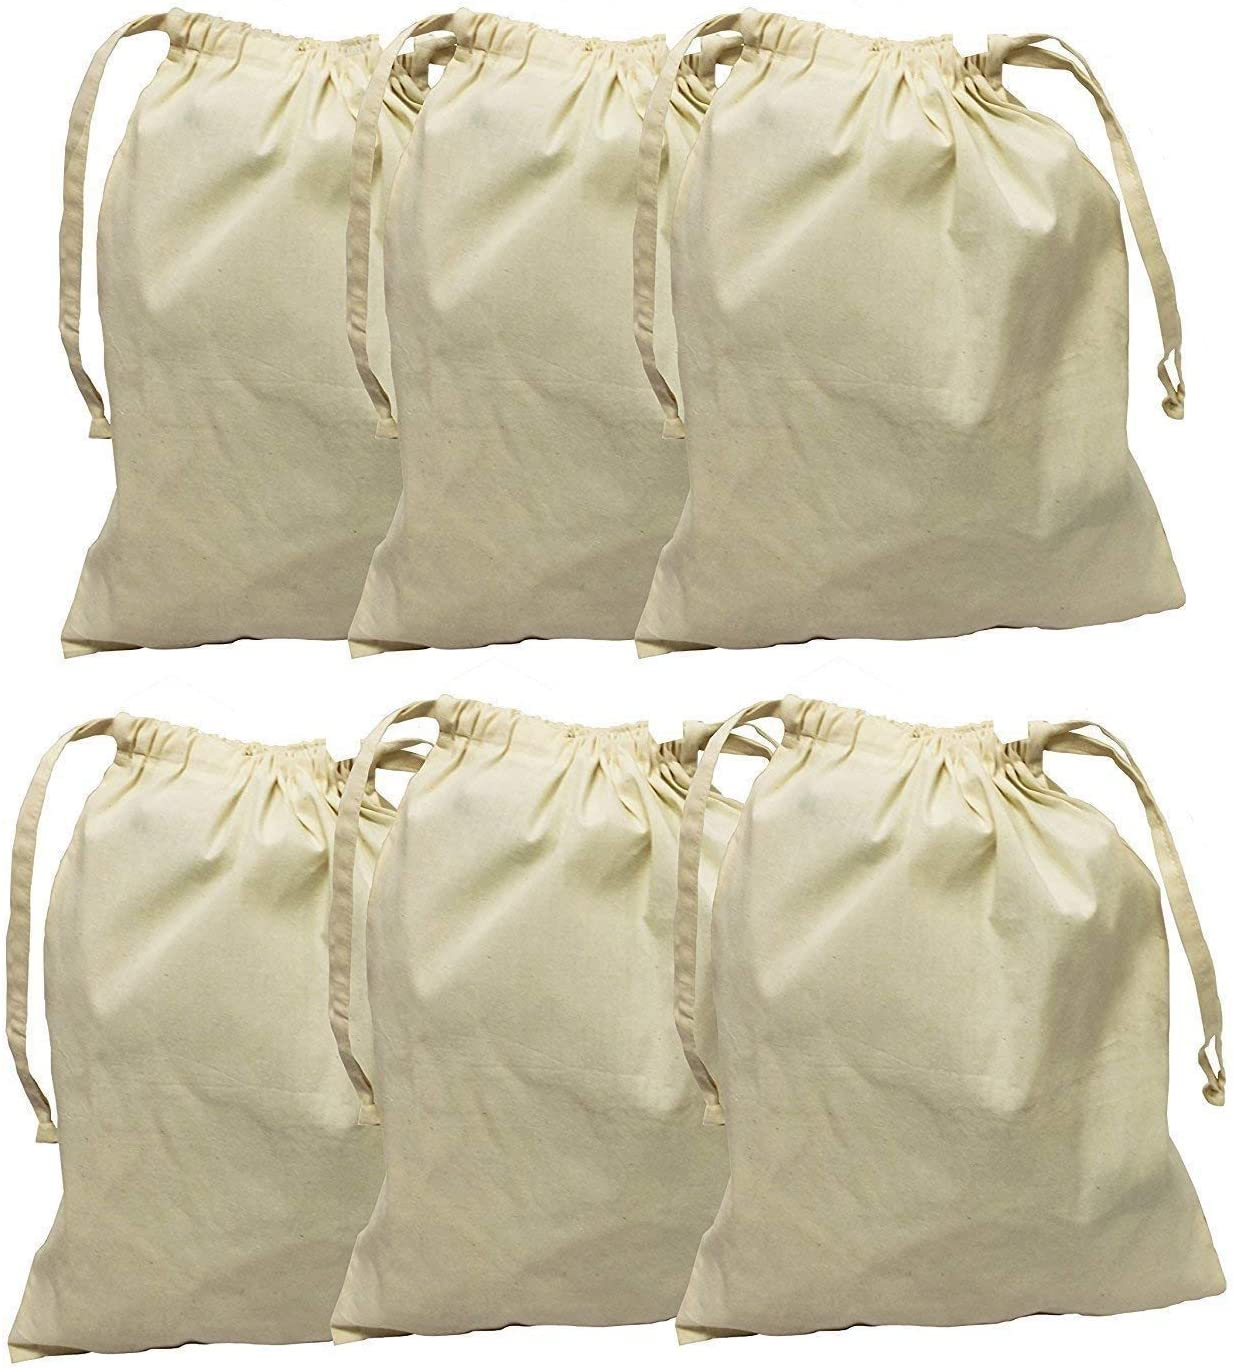 Earthwise Detroit Mall Cotton Muslin Produce Bags with Drawstring Ranking TOP2 Grocery for